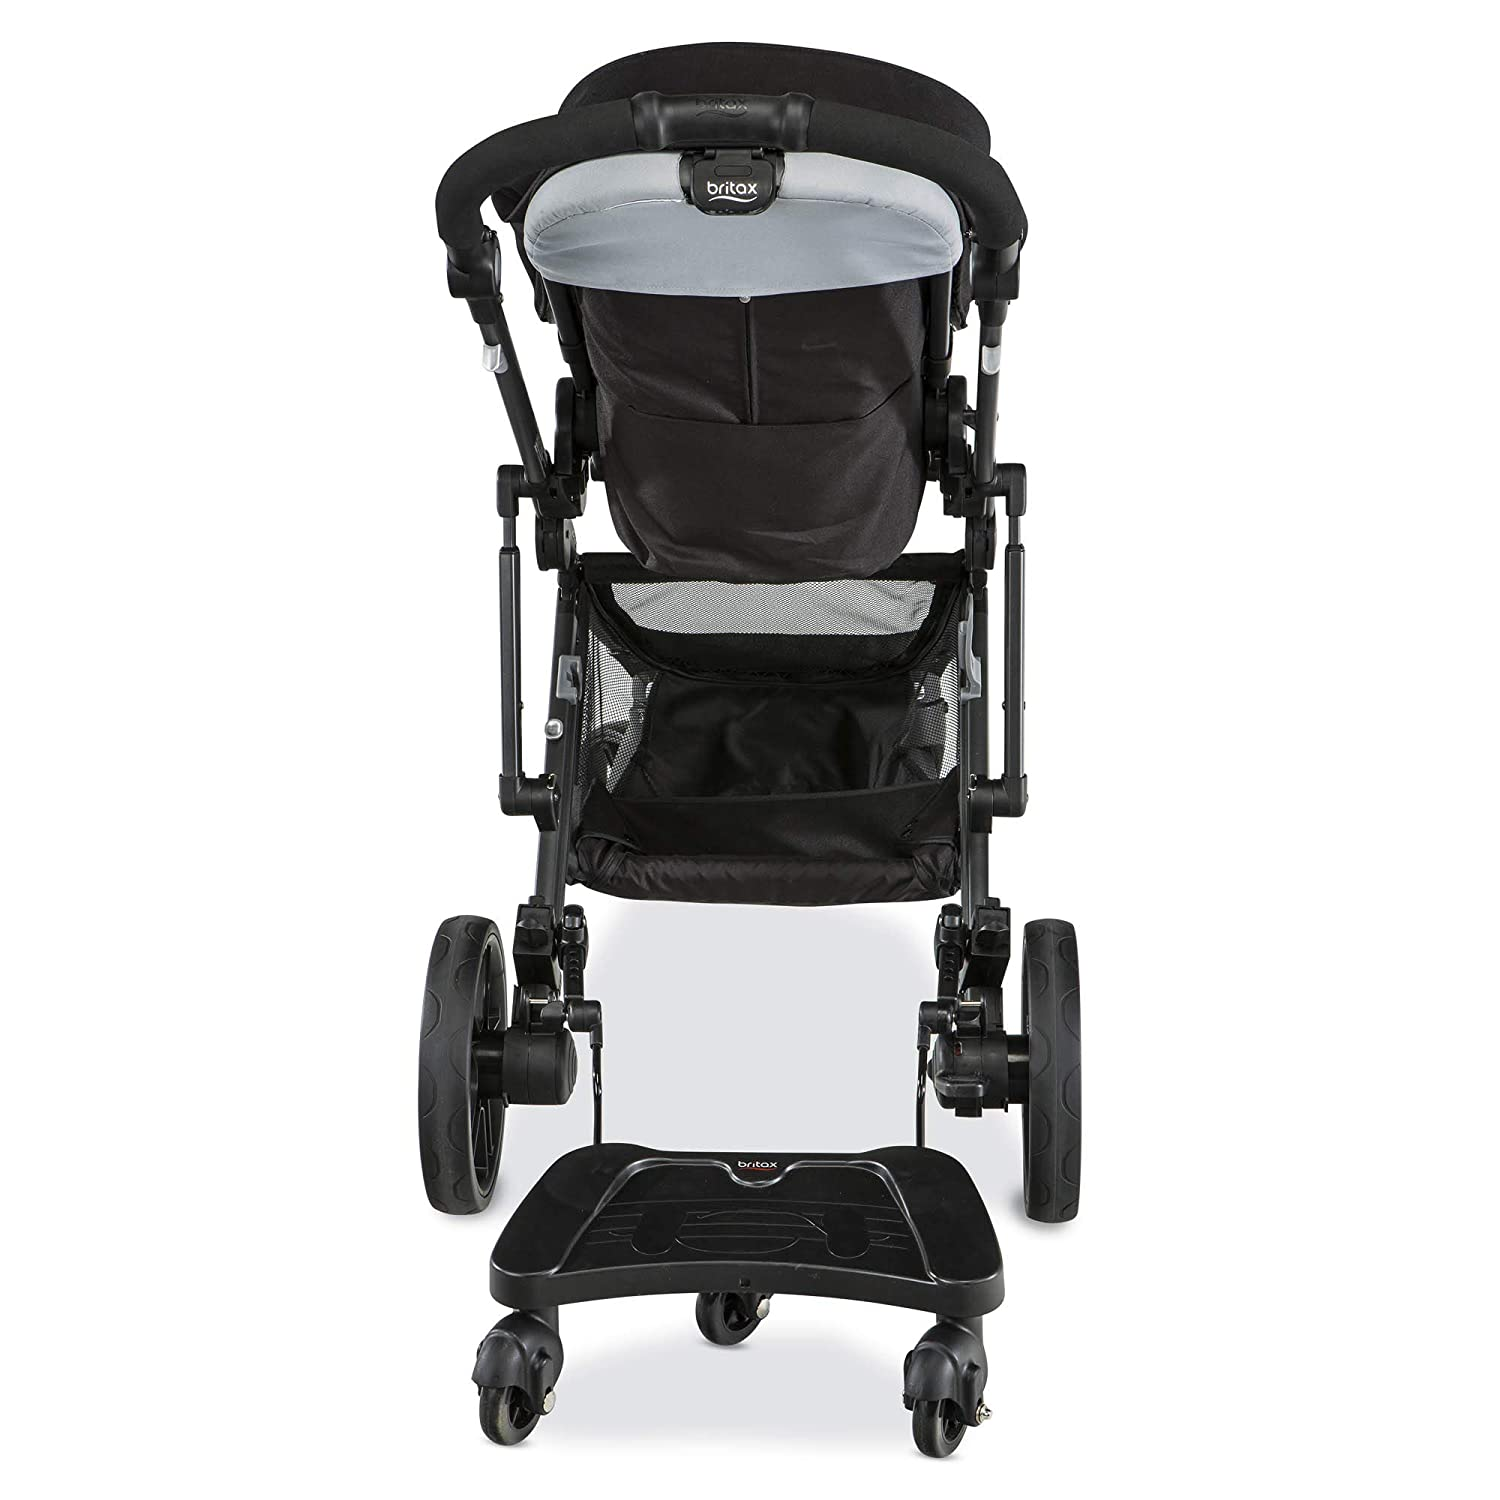 Britax Stroller Ride On Board | 3-Wheel Design for Balance + Quick Release for Easy Install and Removal + Adjustable for Height + Holds Up to 50 Pounds